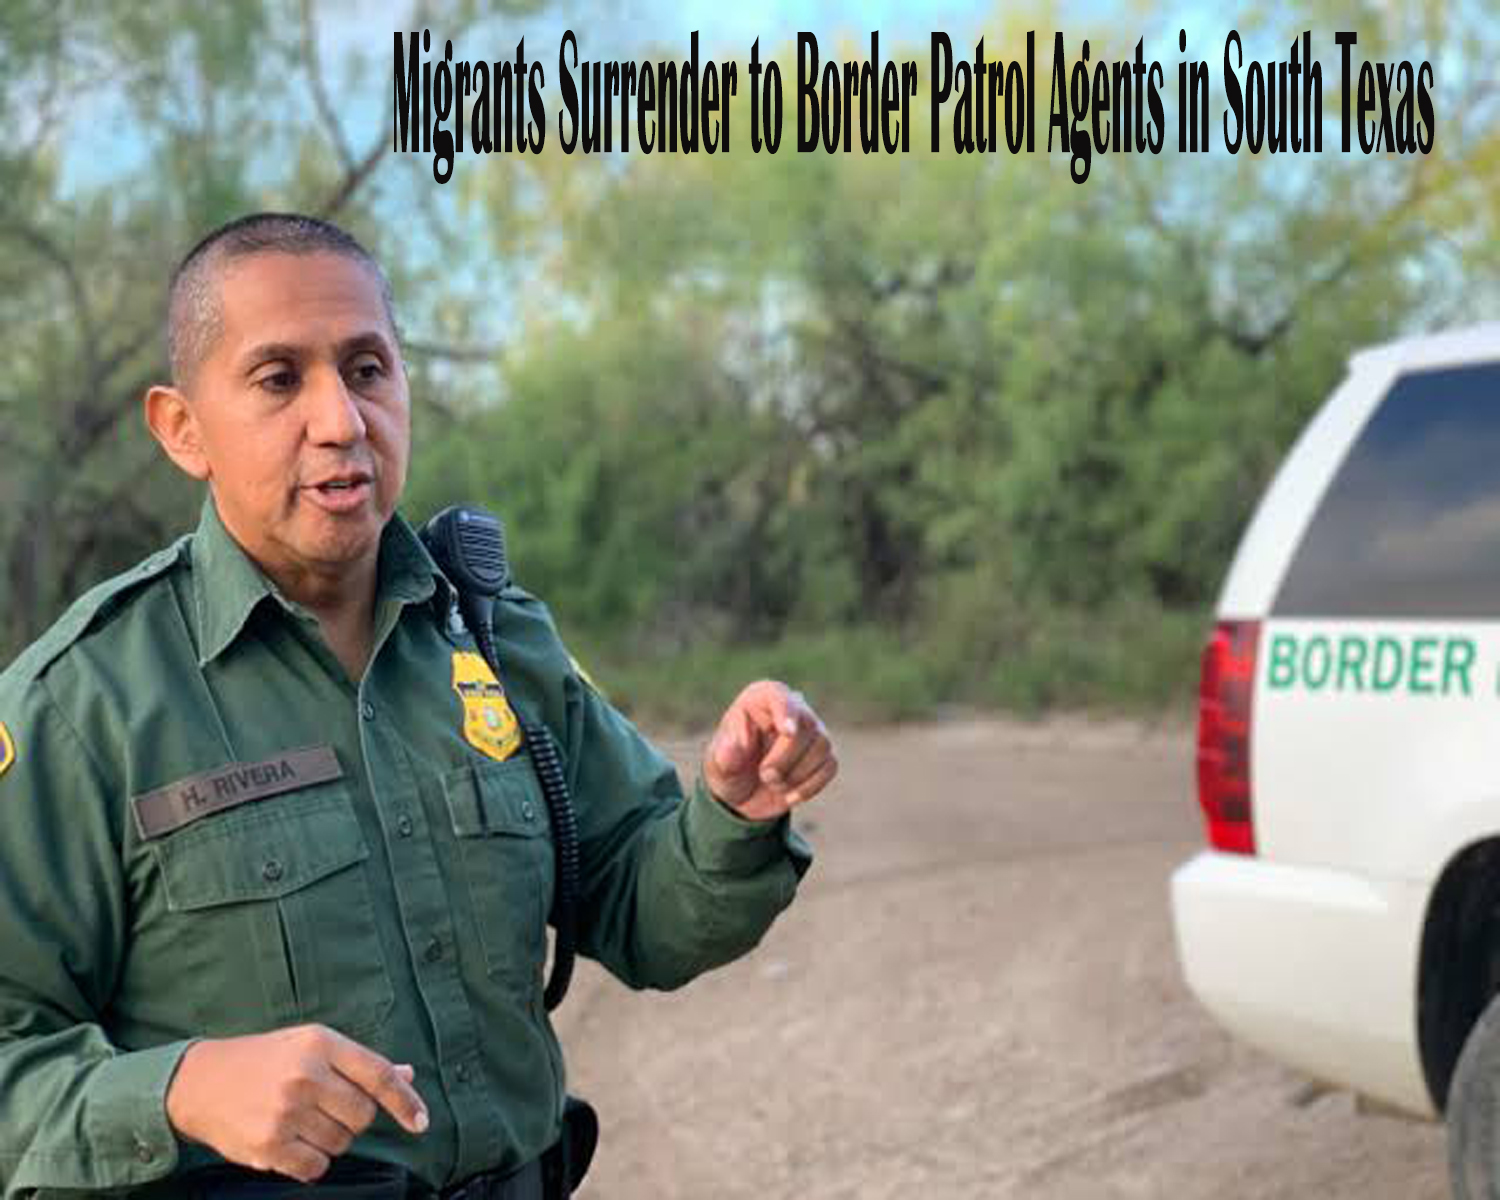 Migrants Surrender to Border Patrol Agents in South Texas